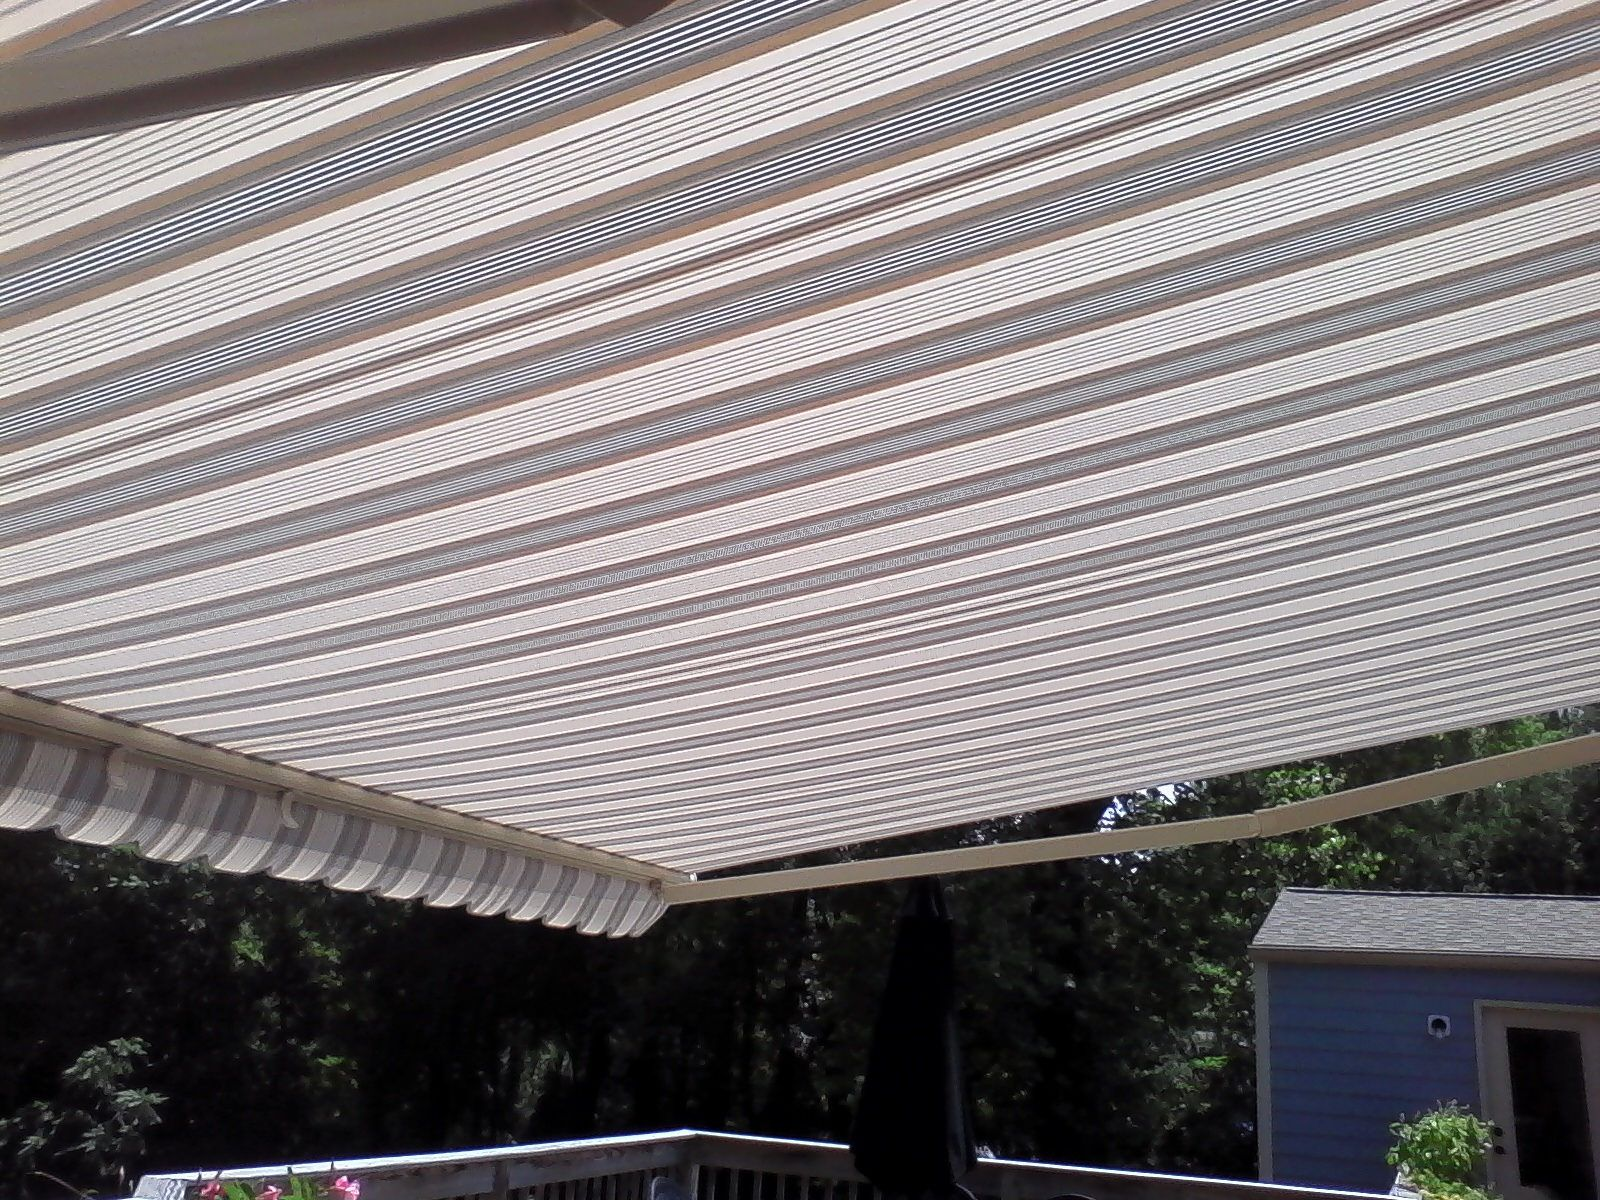 Awning Baltimore Maryland 5113 Belair Rd 21206 410 685 5687 E Mail Infoahoffmanawning Md